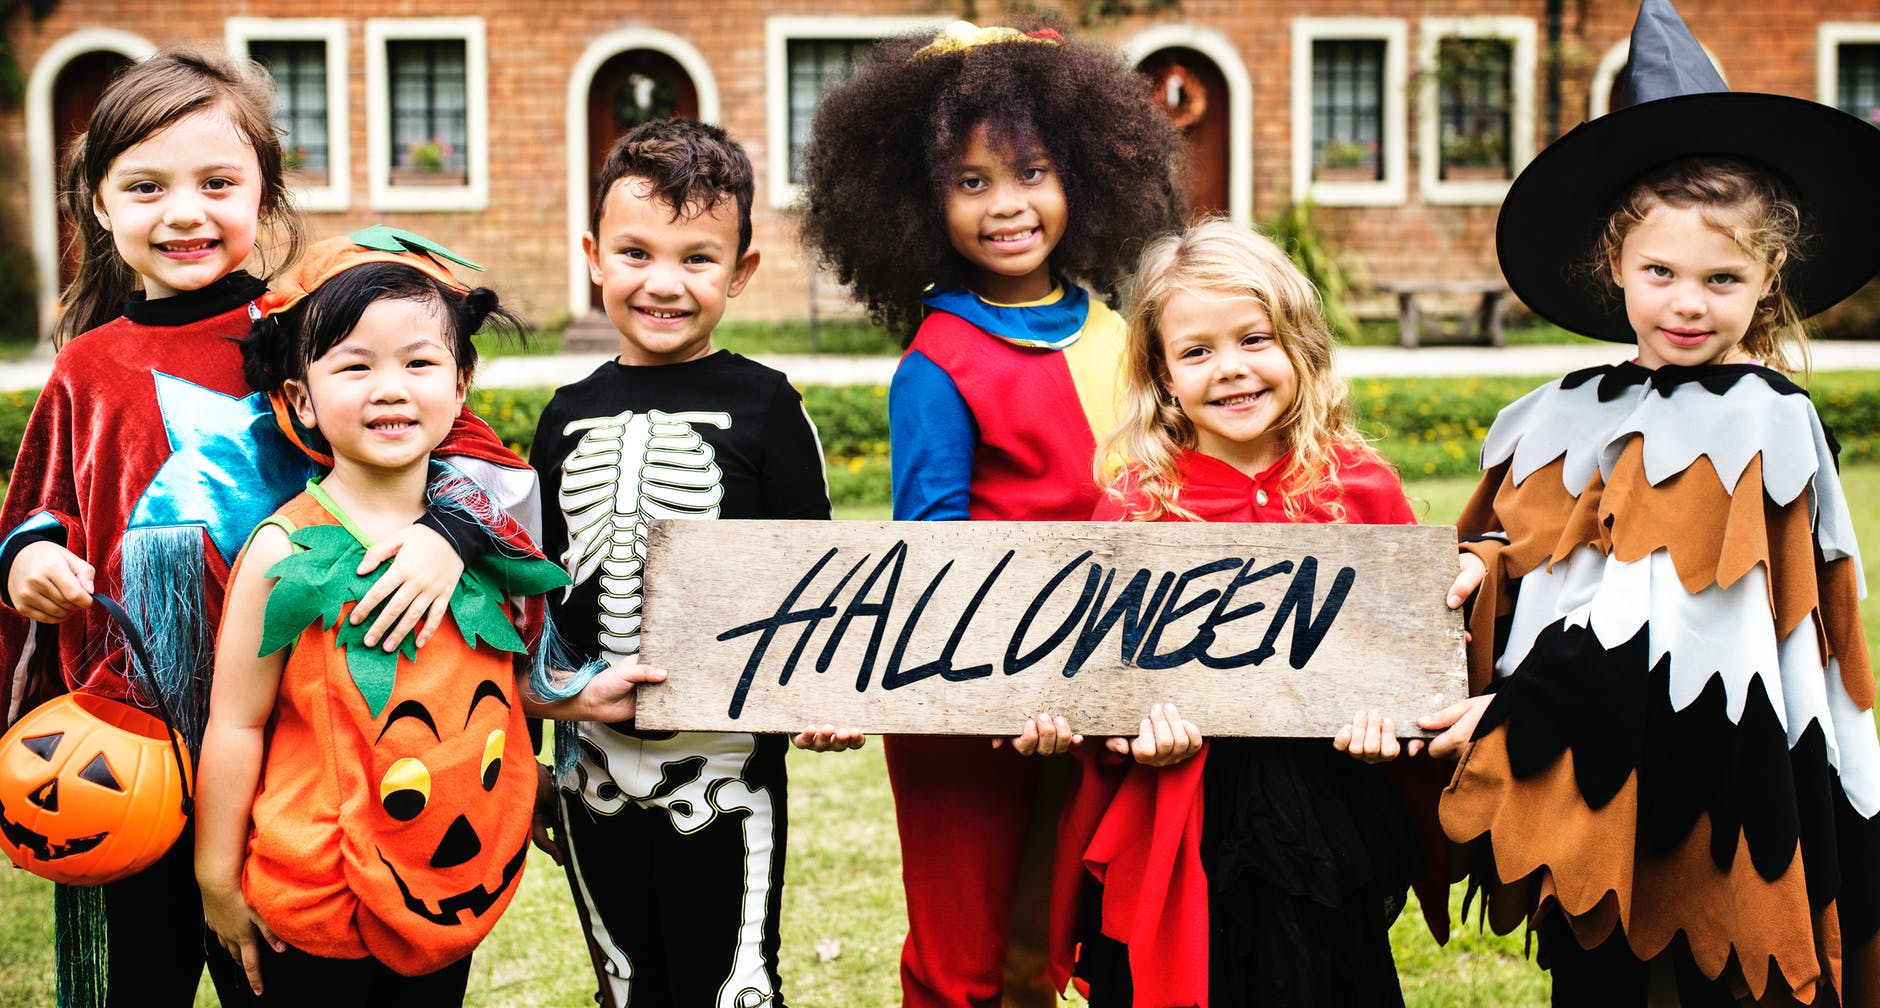 photo of children in halloween costumes smiling